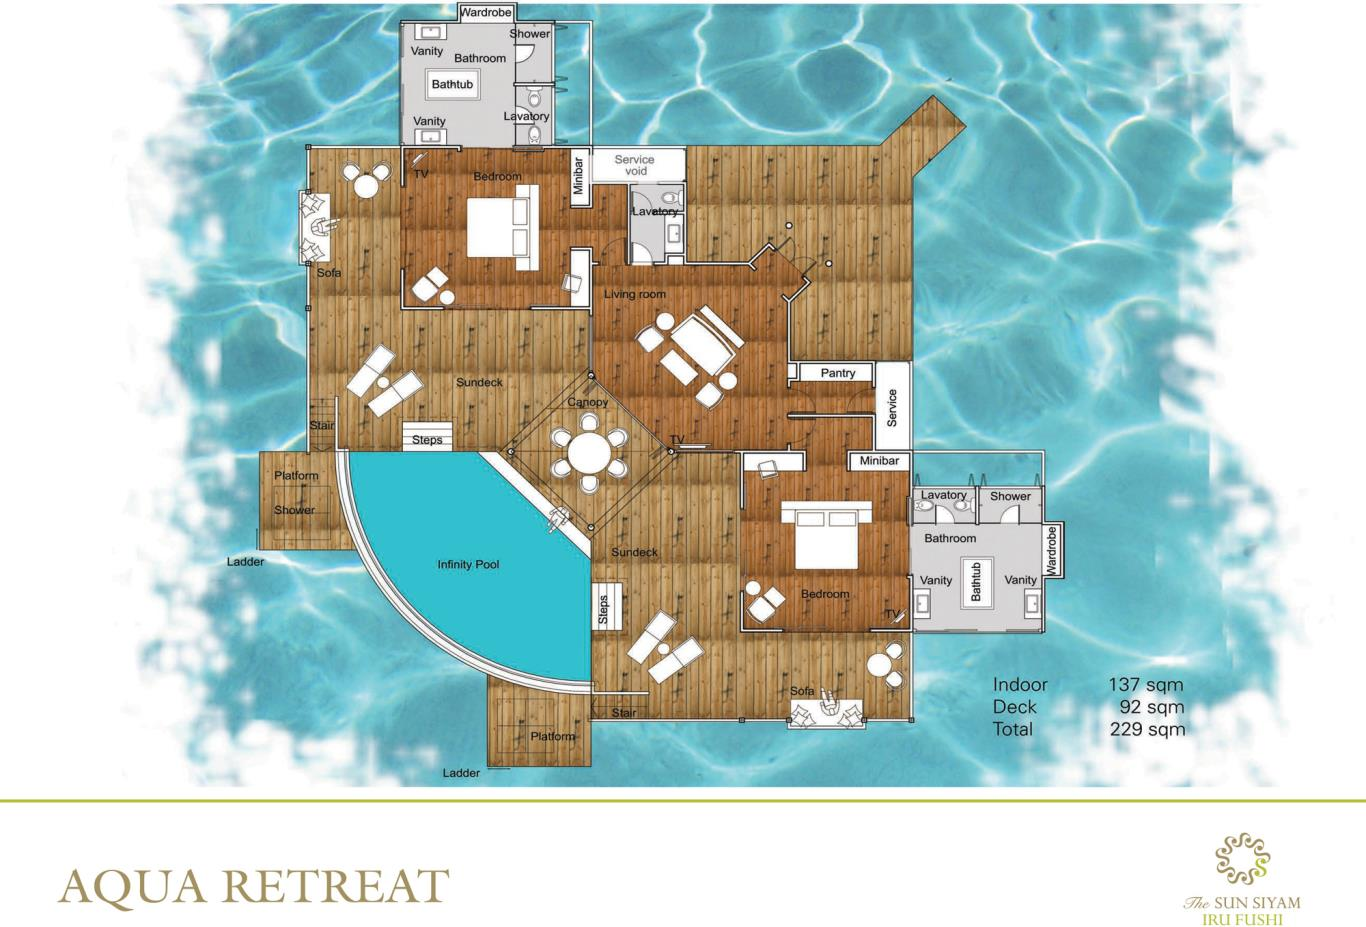 Aqua Retreat Floorplan